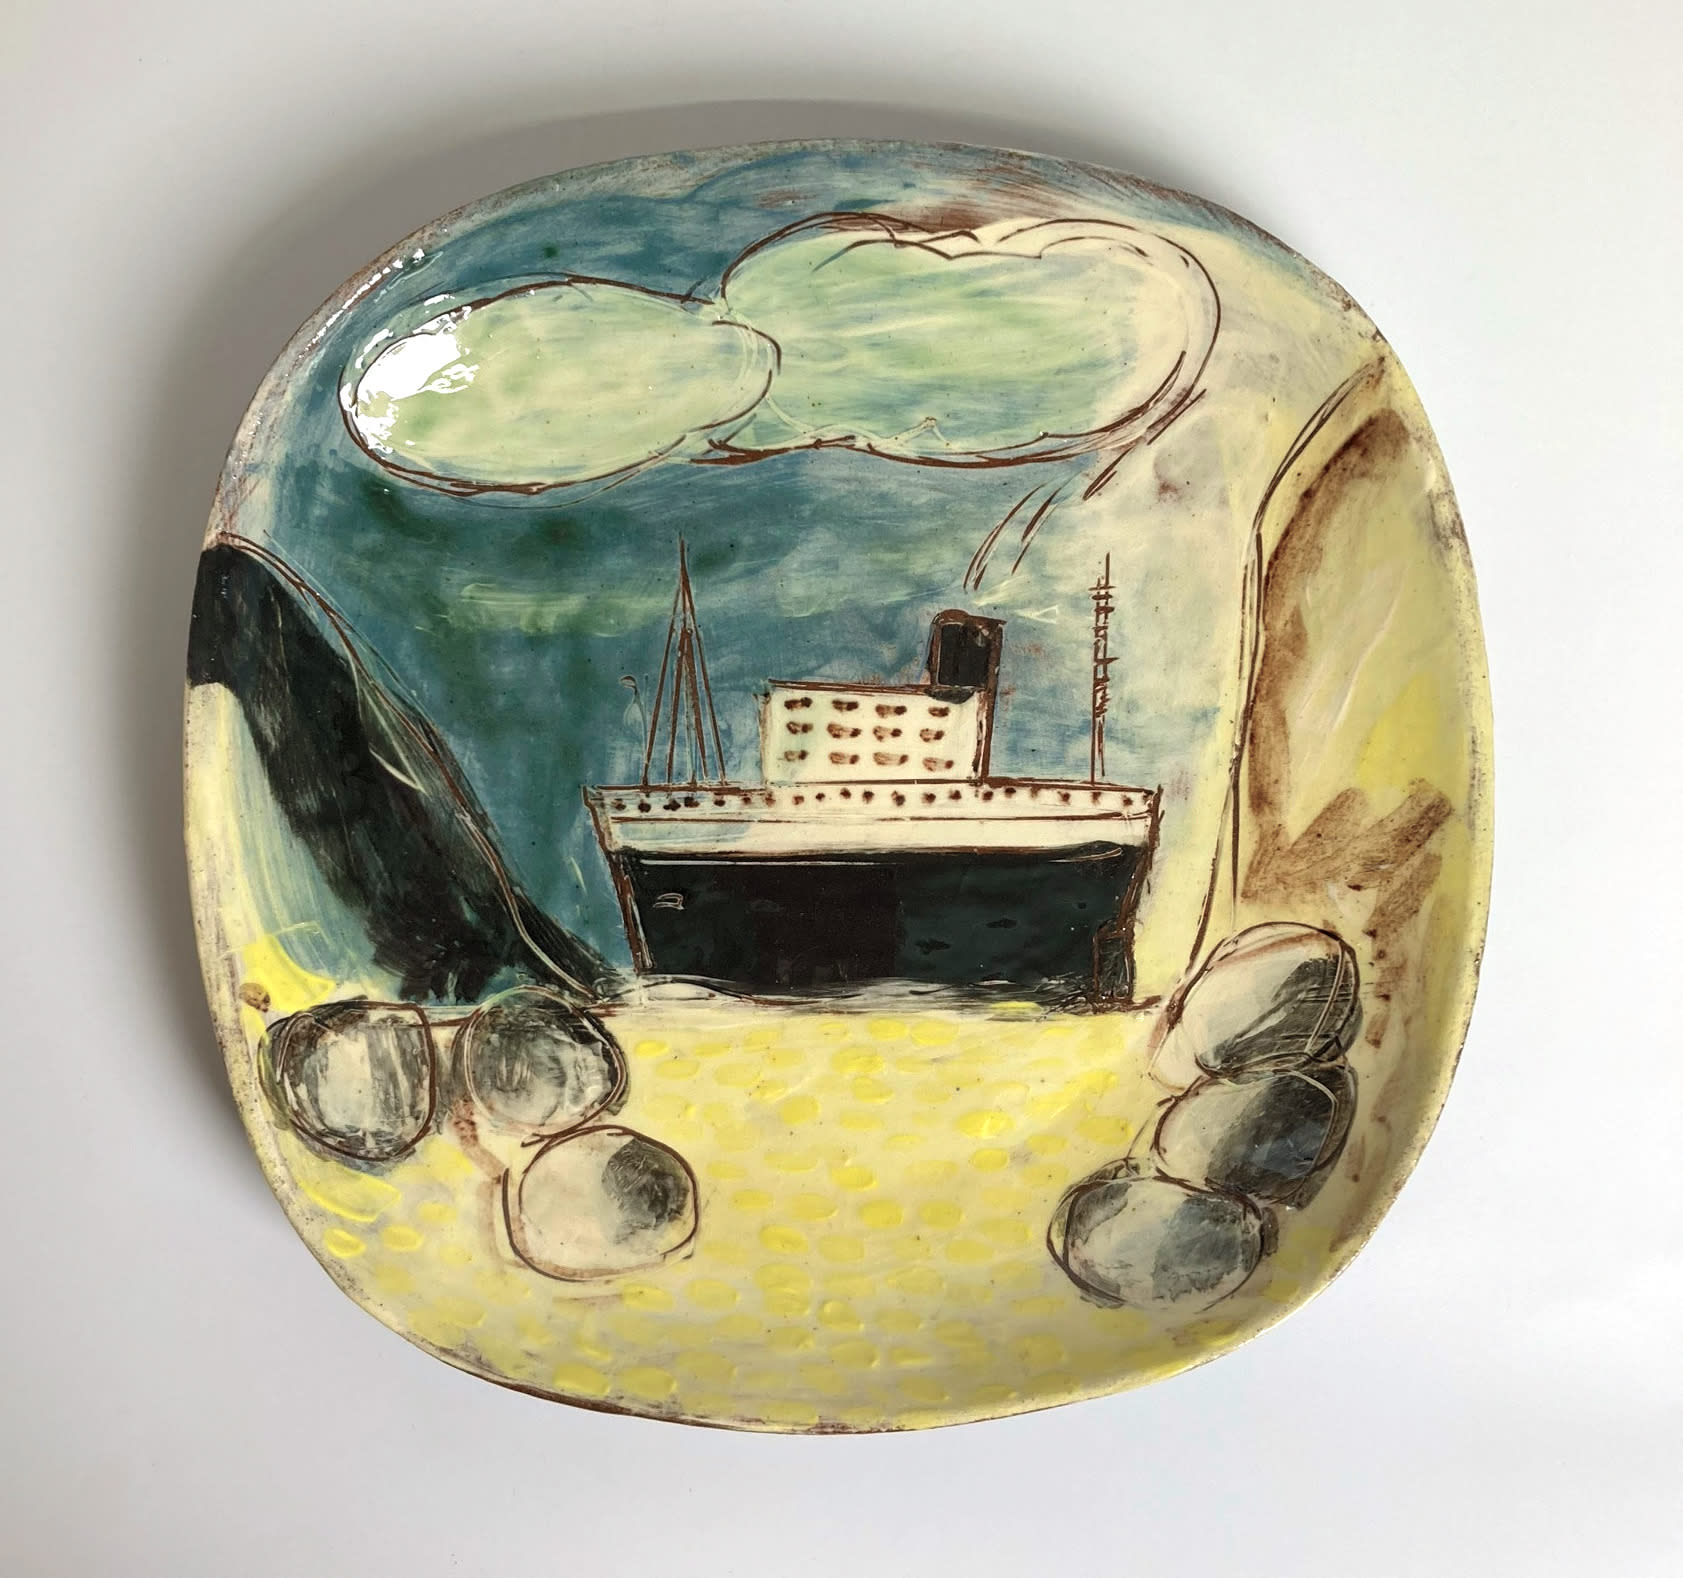 """<span class=""""link fancybox-details-link""""><a href=""""/artists/428-anne-barrell/works/7690-anne-barrell-the-big-ship-glimpsed-from-the-beach-2021/"""">View Detail Page</a></span><div class=""""artist""""><strong>Anne Barrell</strong></div> <div class=""""title""""><em>The Big Ship Glimpsed from the Beach </em>, 2021</div> <div class=""""medium"""">handmade, hand-painted ceramic </div> <div class=""""dimensions"""">h. 23 x w. 23 cm </div><div class=""""price"""">£100.00</div><div class=""""copyright_line"""">Own Art: £10 x 10 Months, 0% APR</div>"""